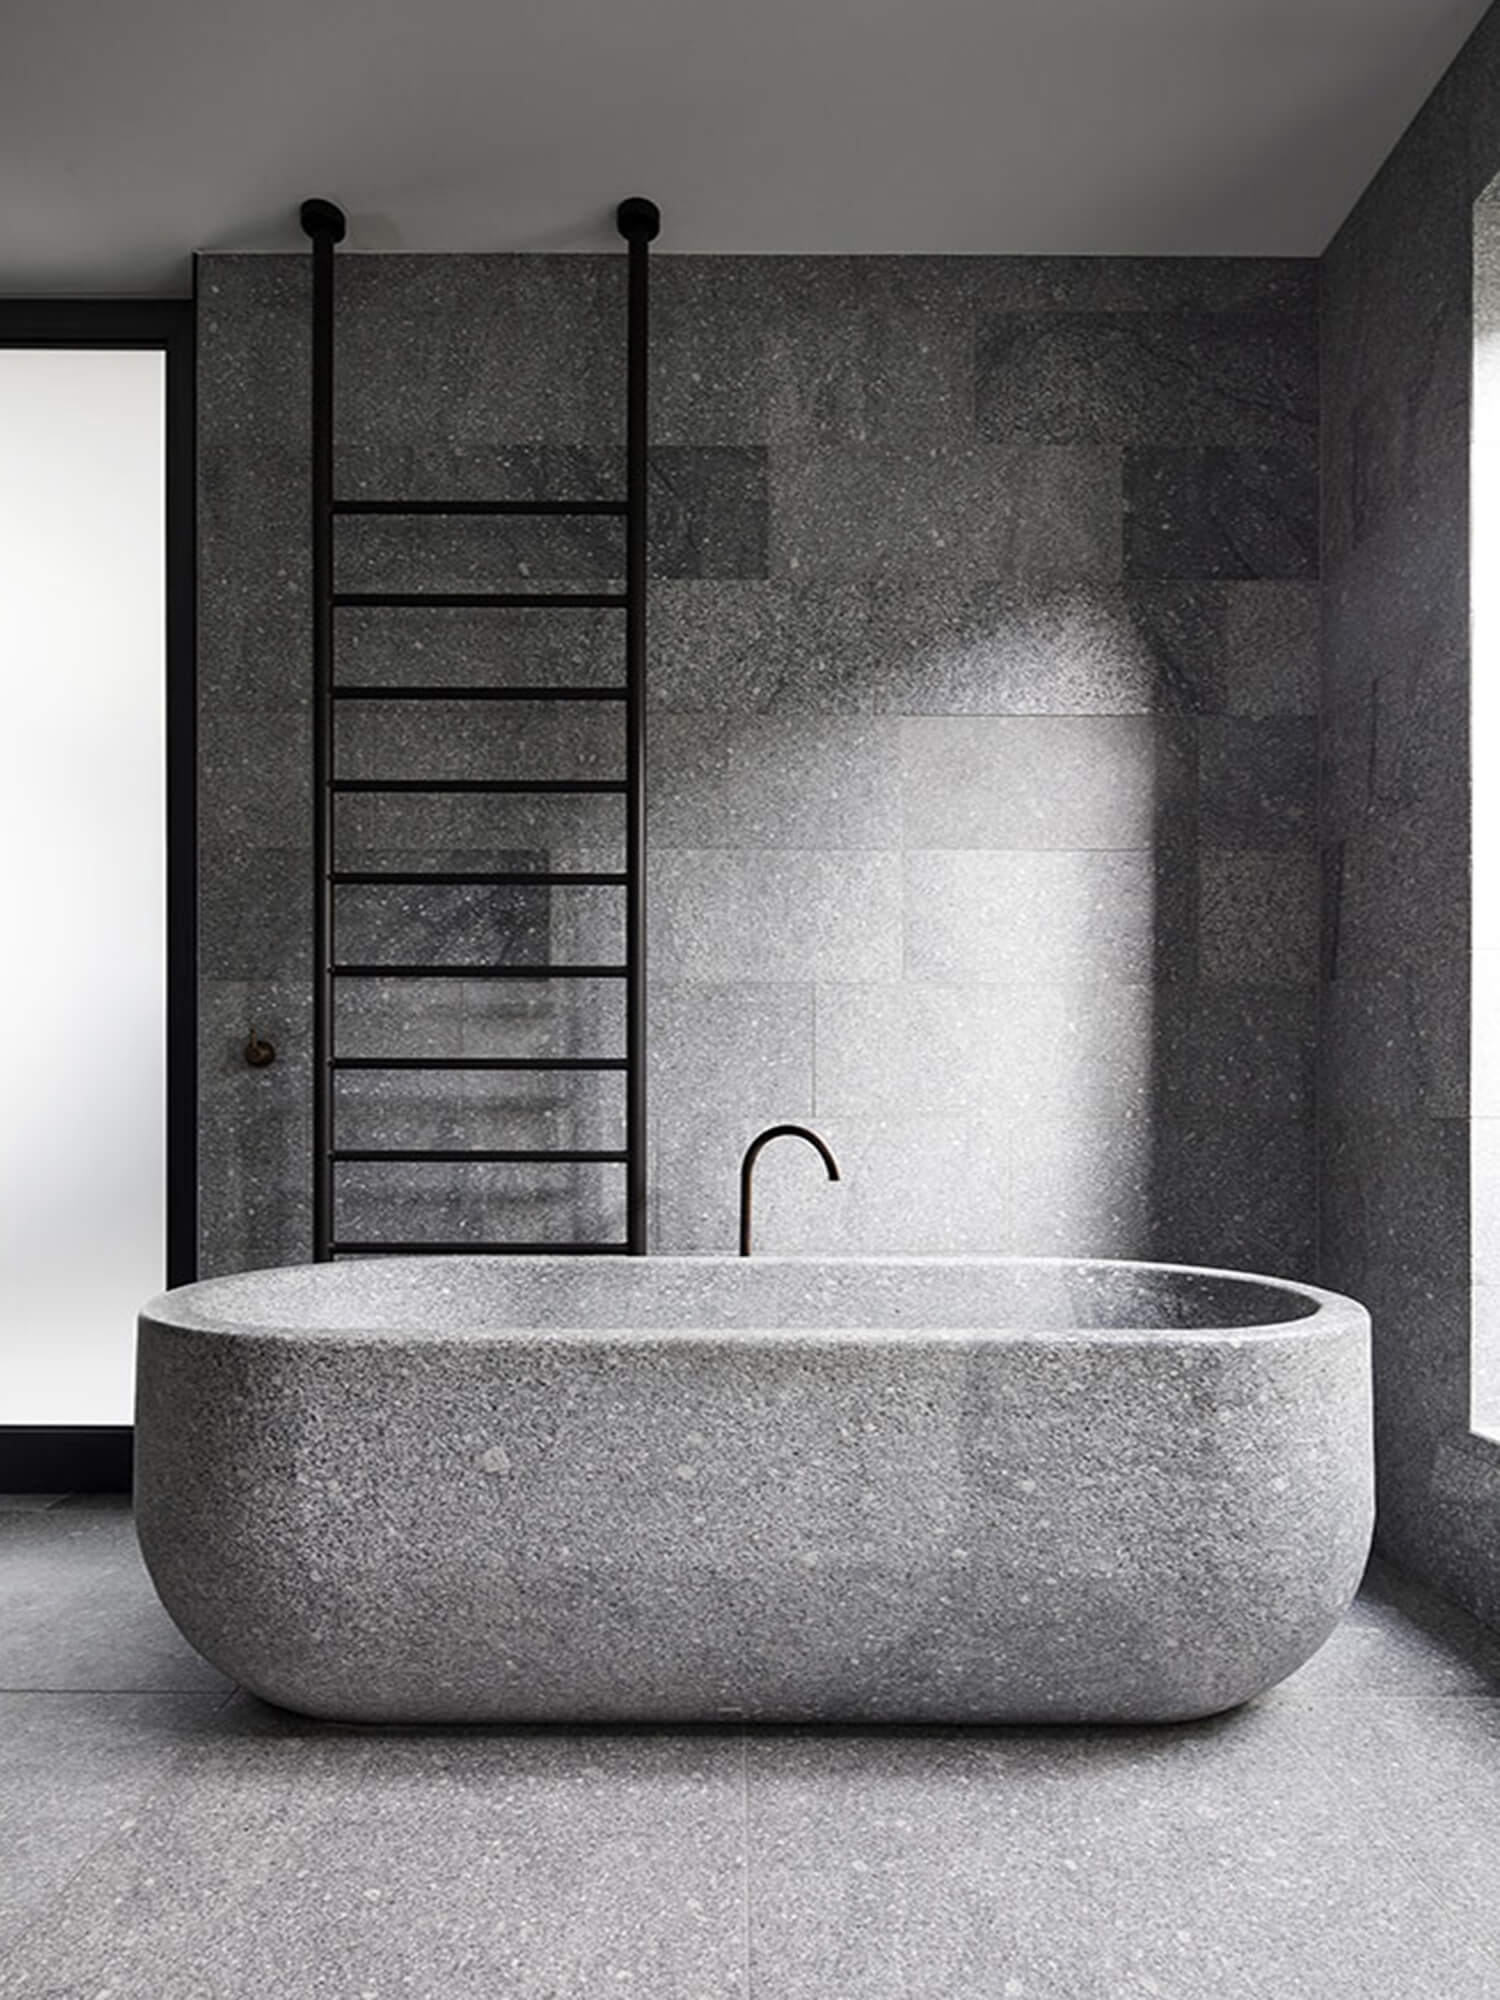 est living  interiors b.e architecture Armadale Bathroom image 01 1